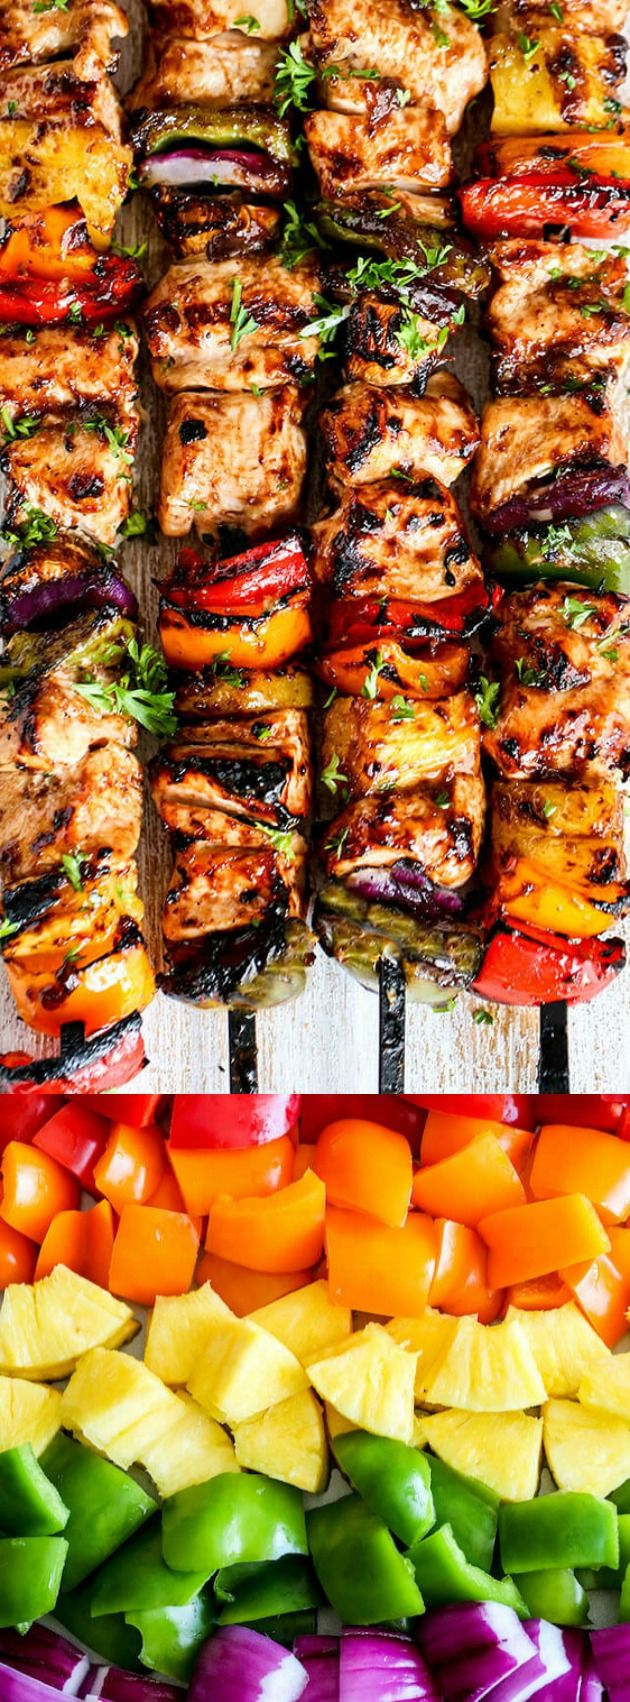 These Grilled Hawaiian Chicken Kabobs from Spend with Pennies have tender juicy chicken layered with a rainbow of veggies in a tangy Pineapple Honey BBQ Sauce.